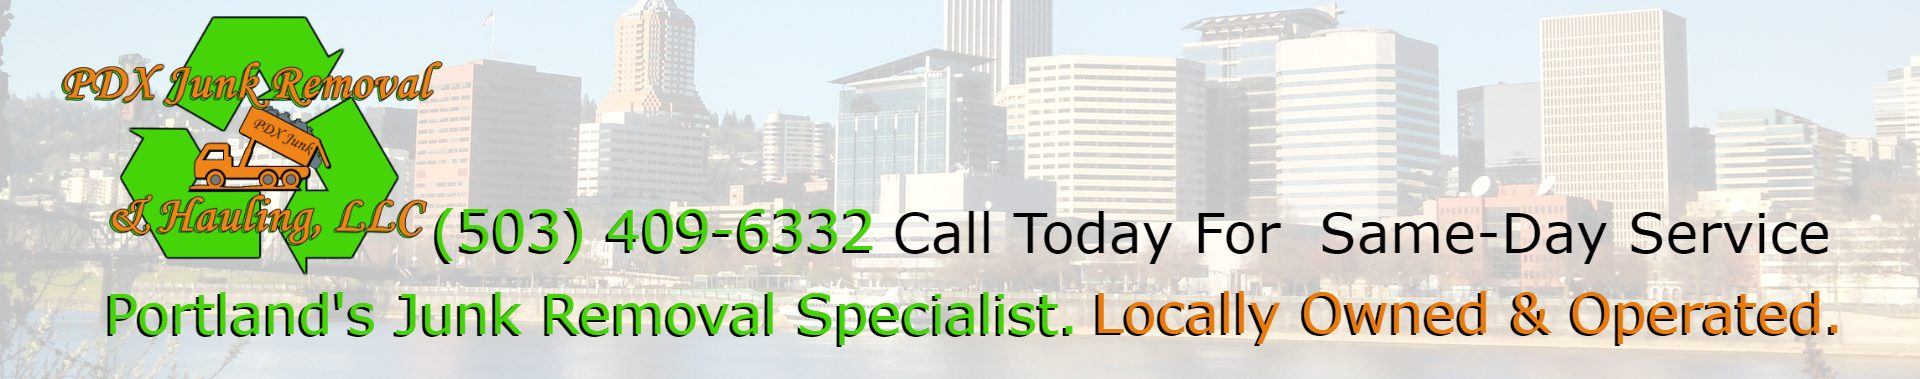 Pdx Metro Property Management Or